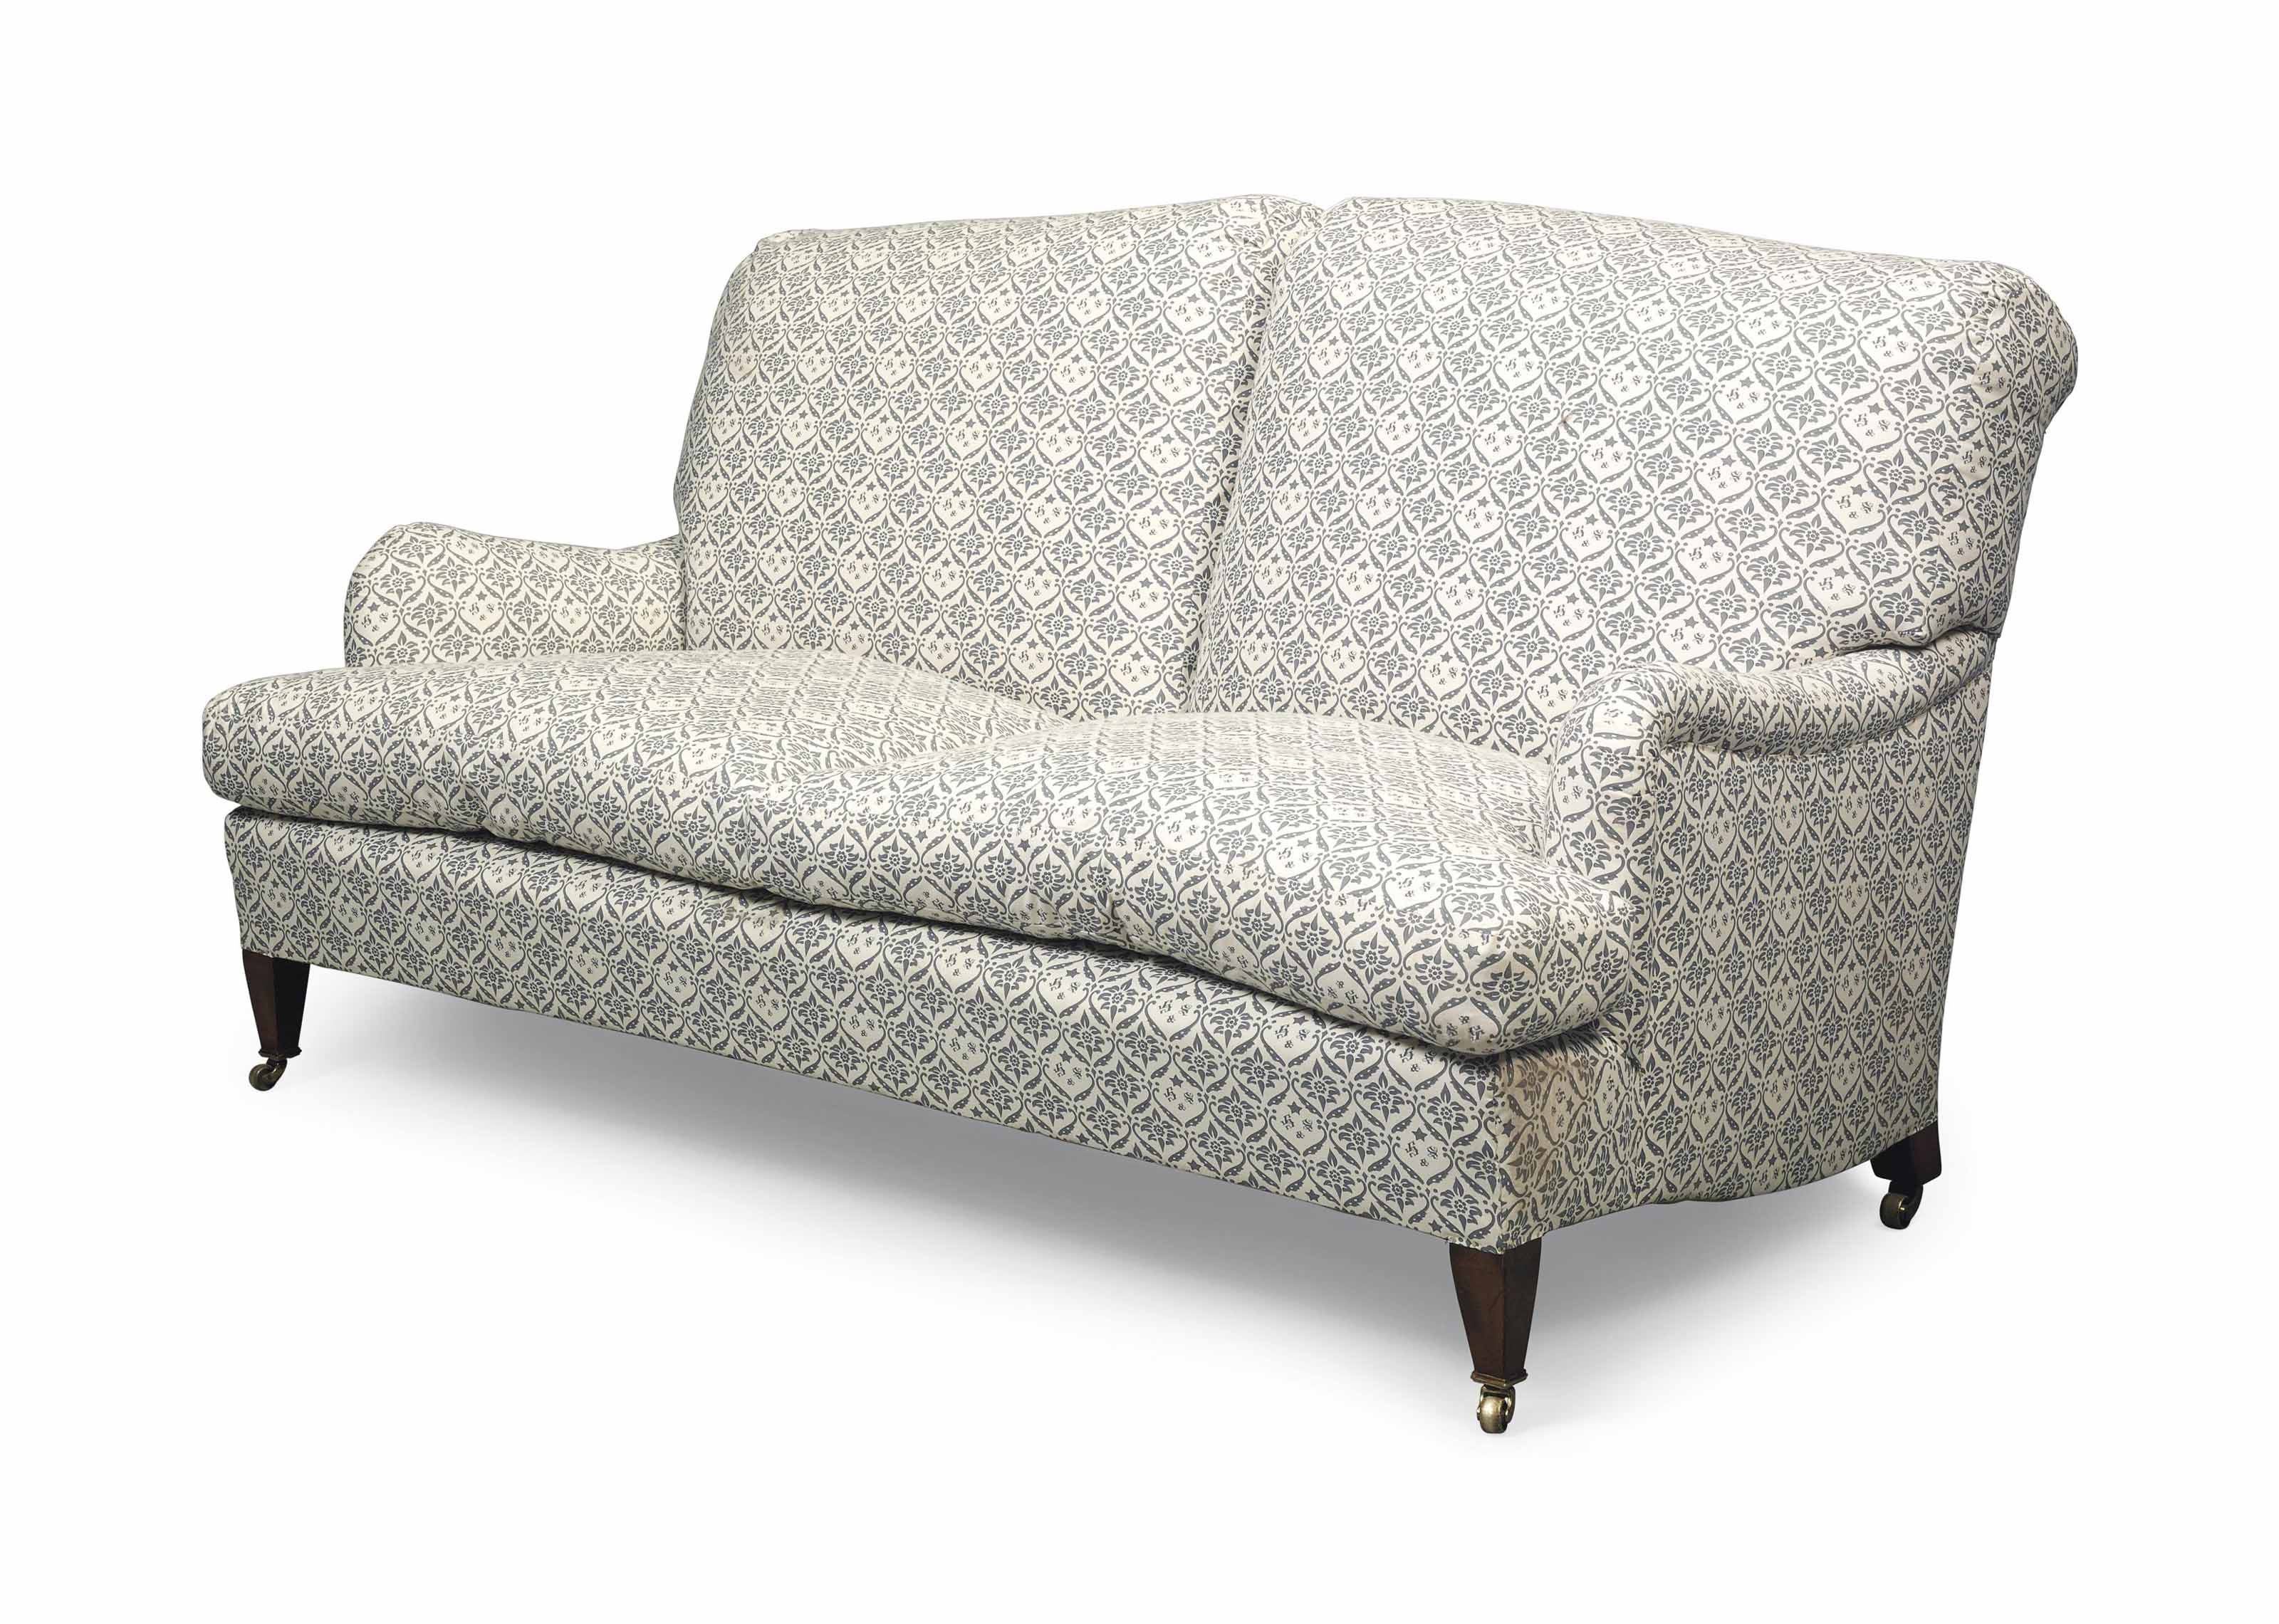 A BEECH TWO-SEATER SOFA